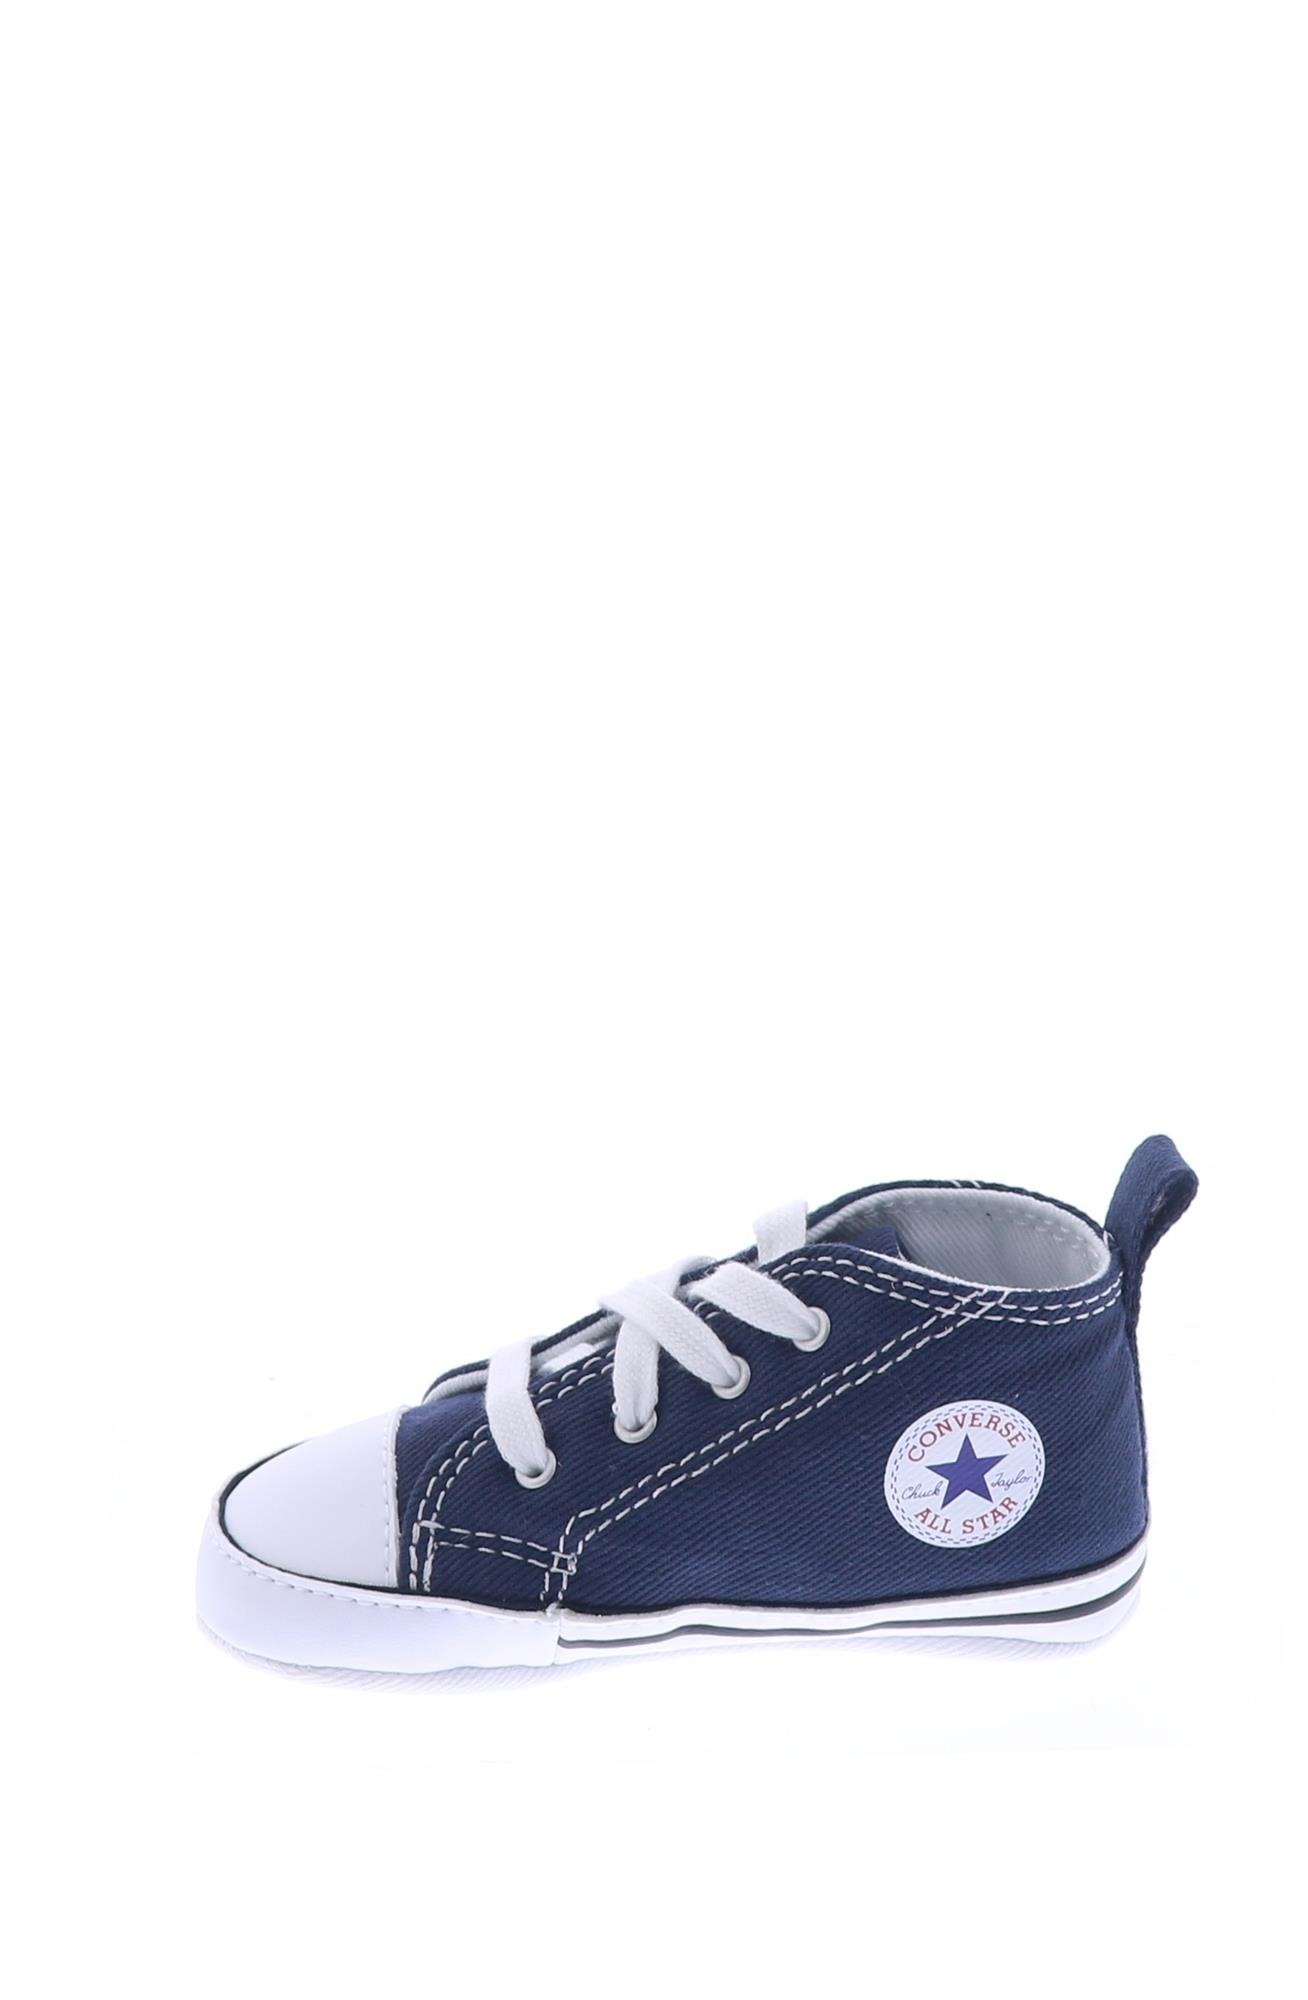 Converse CT First Star Hi Navy Baby Schoenen Nolten